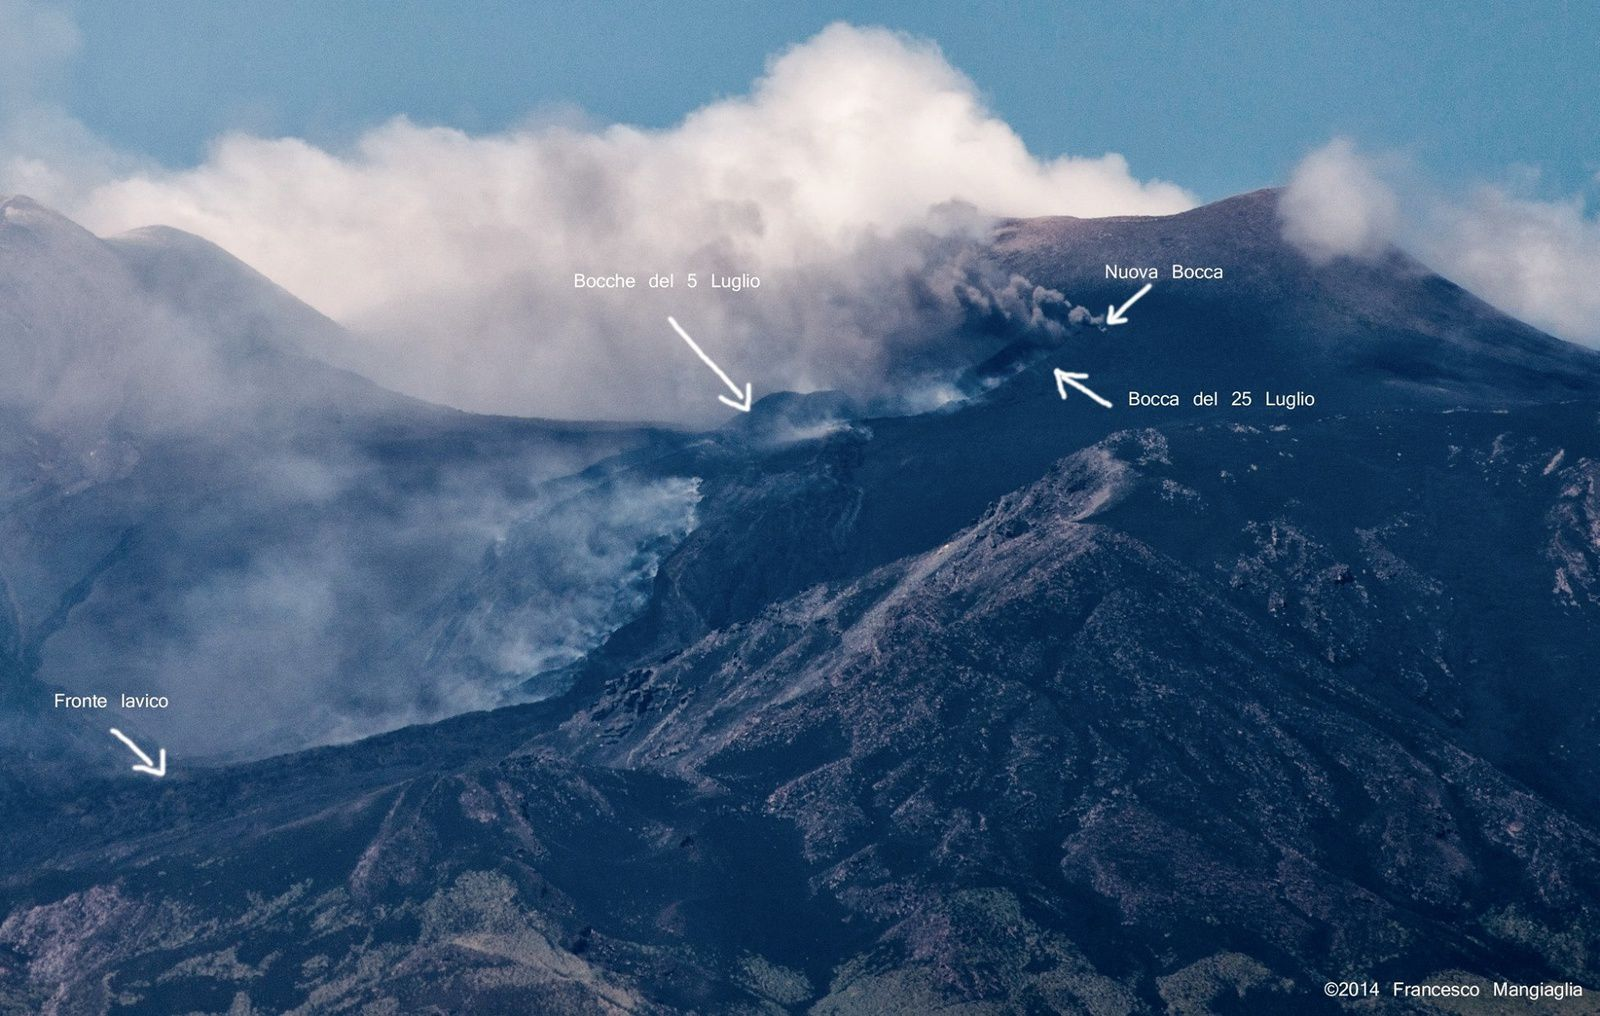 Etna - progression of the eruptive fissure vents, with position on 5 and 25 July, and the new mouth - photo Francesco Mangiaglia / annotation via iEtna